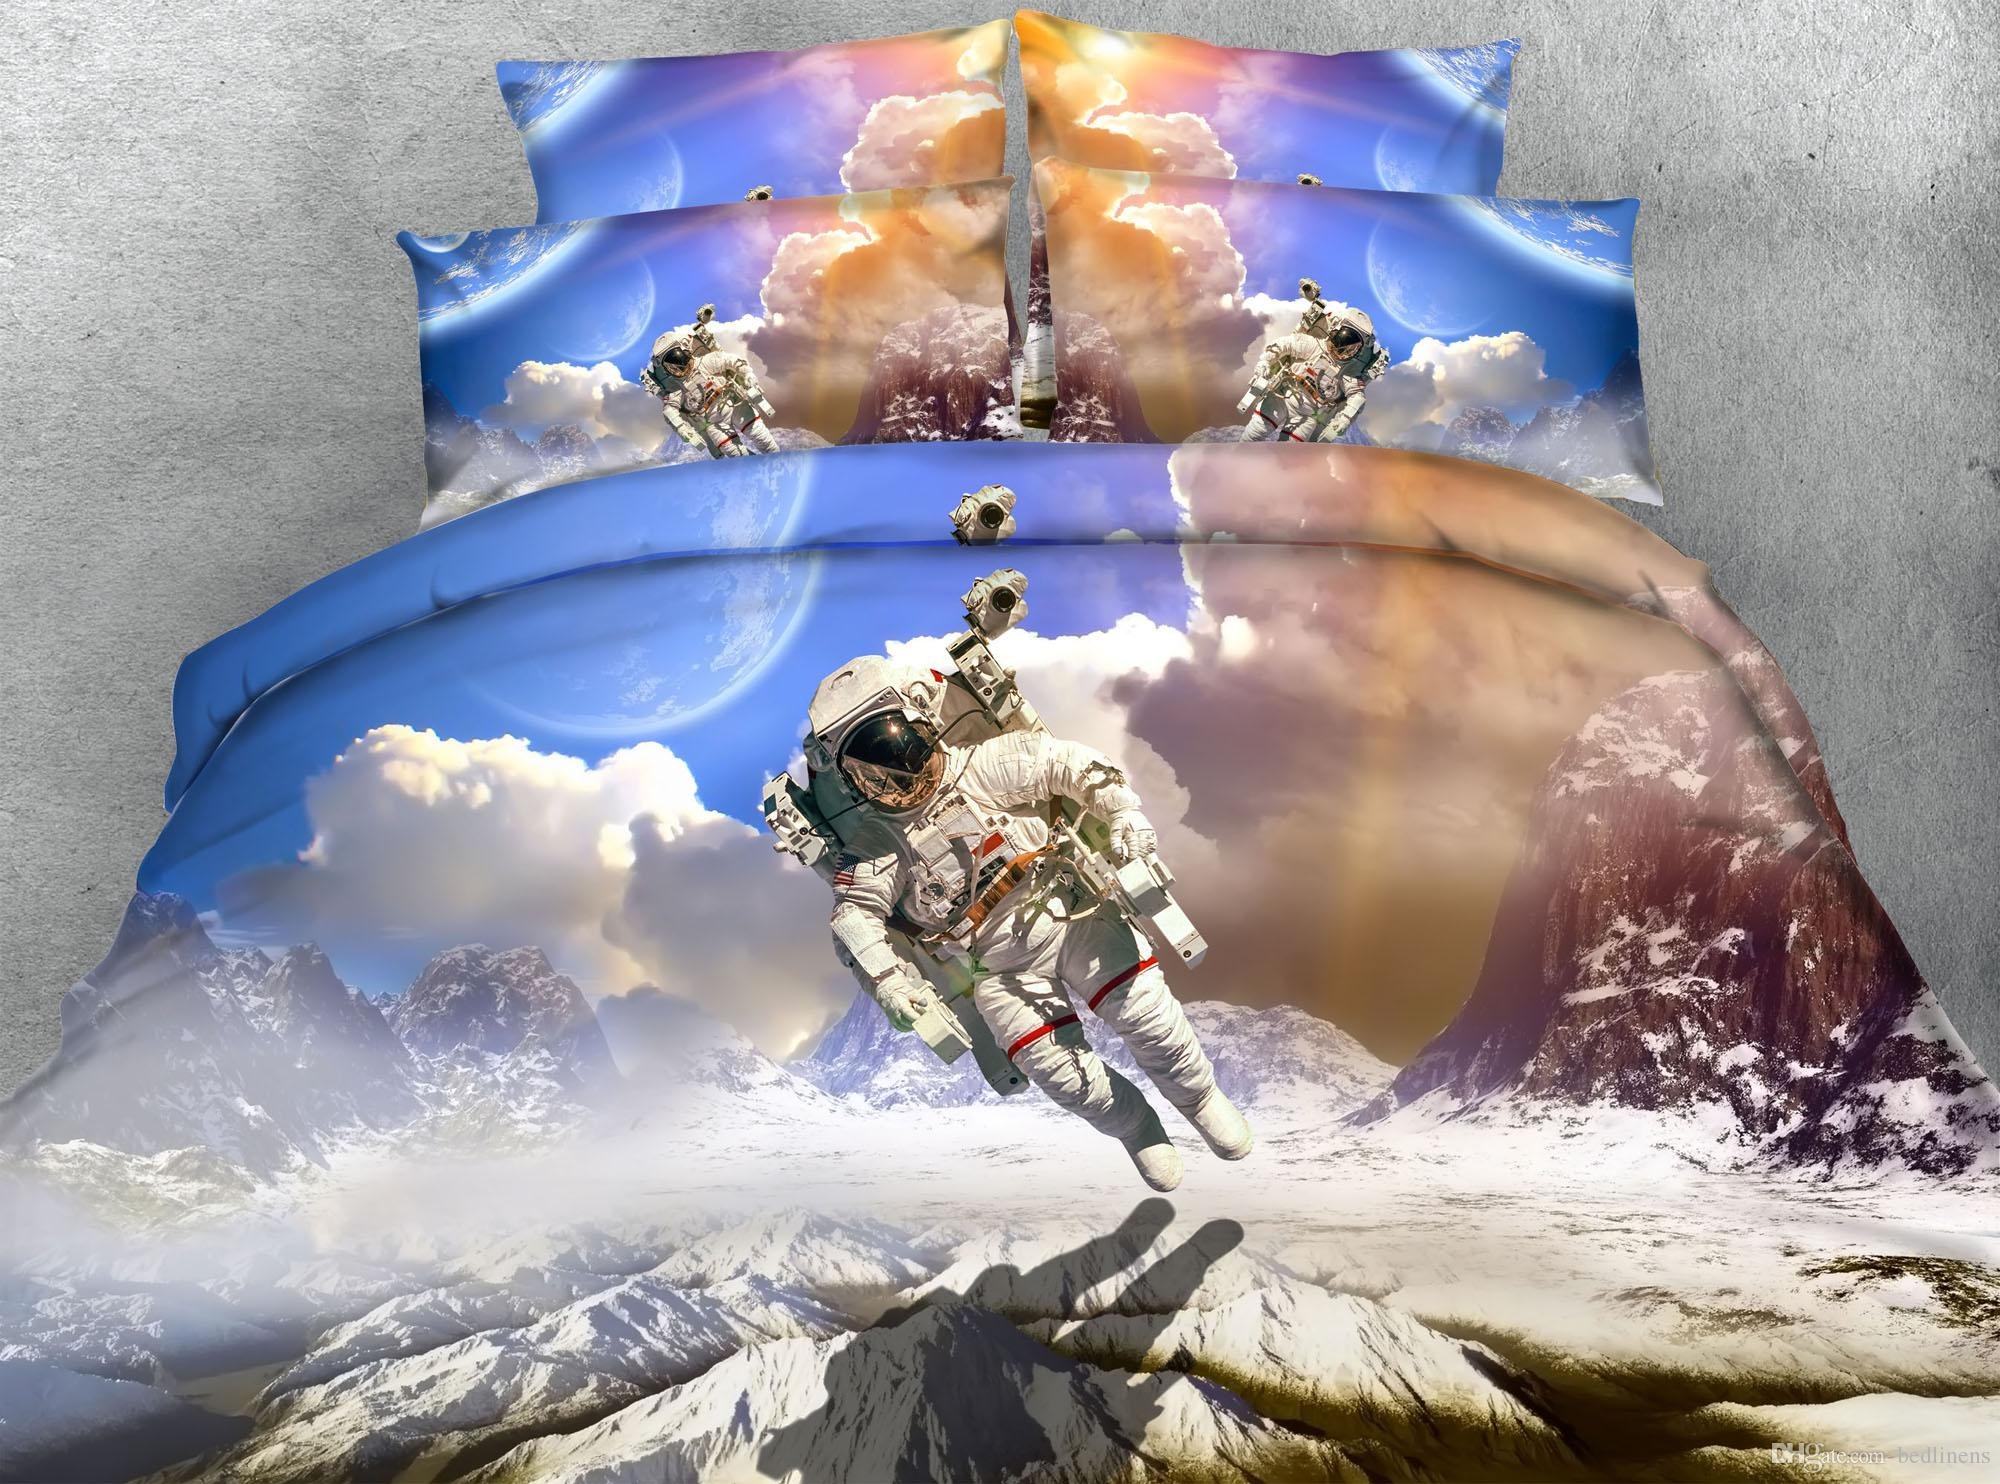 Landing Astronaut Dovet Cover Set Twin Full/Queen King Cal King Size Pillow Covers Bedspreads Cotton/Polyester Home Textiles Comforter Set